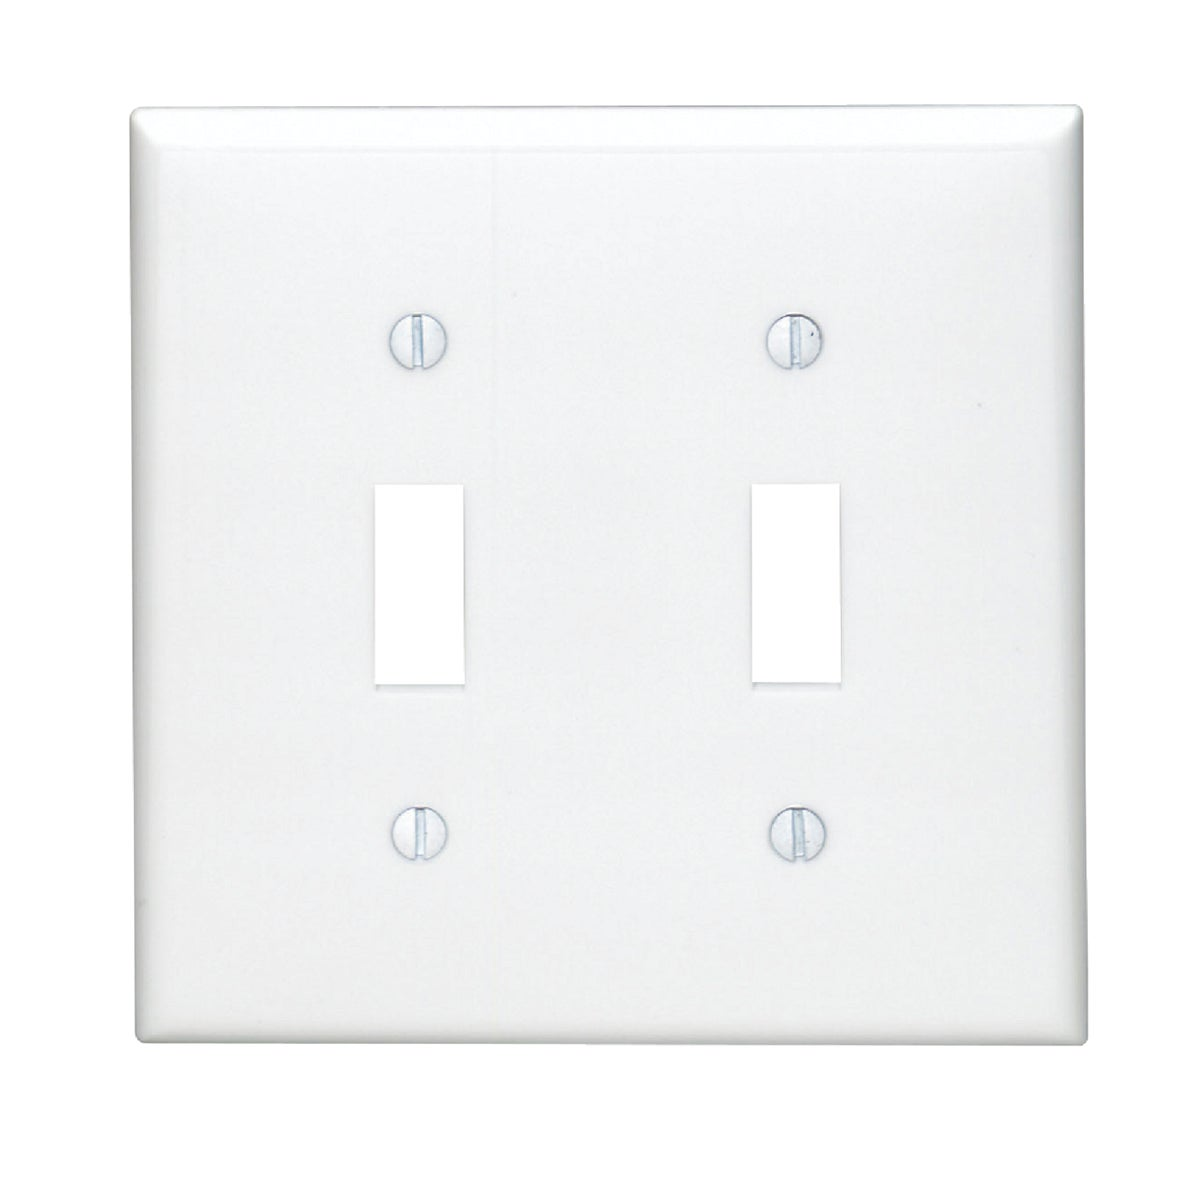 WHT 2-TOGGLE WALL PLATE - 80709W by Leviton Mfg Co